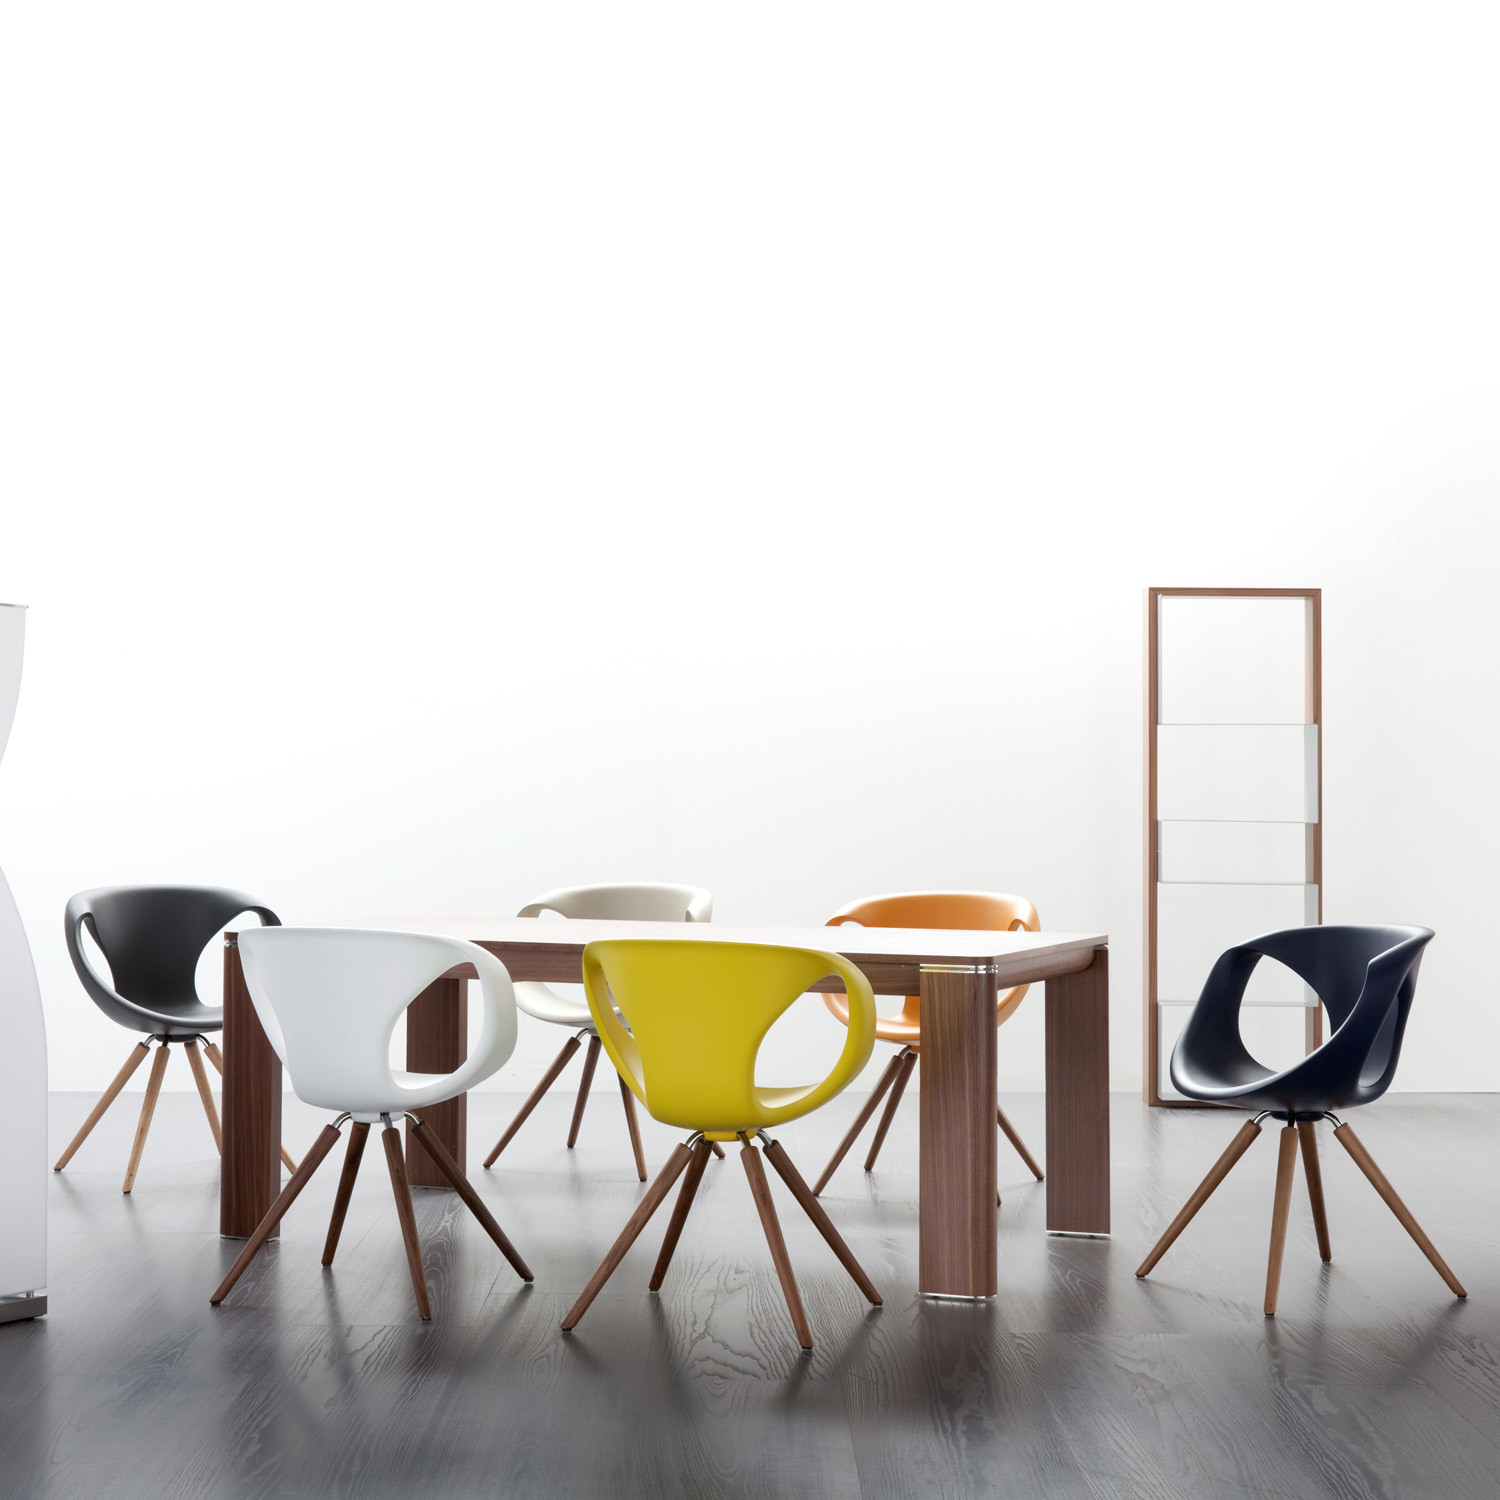 Up Chairs from Tonon